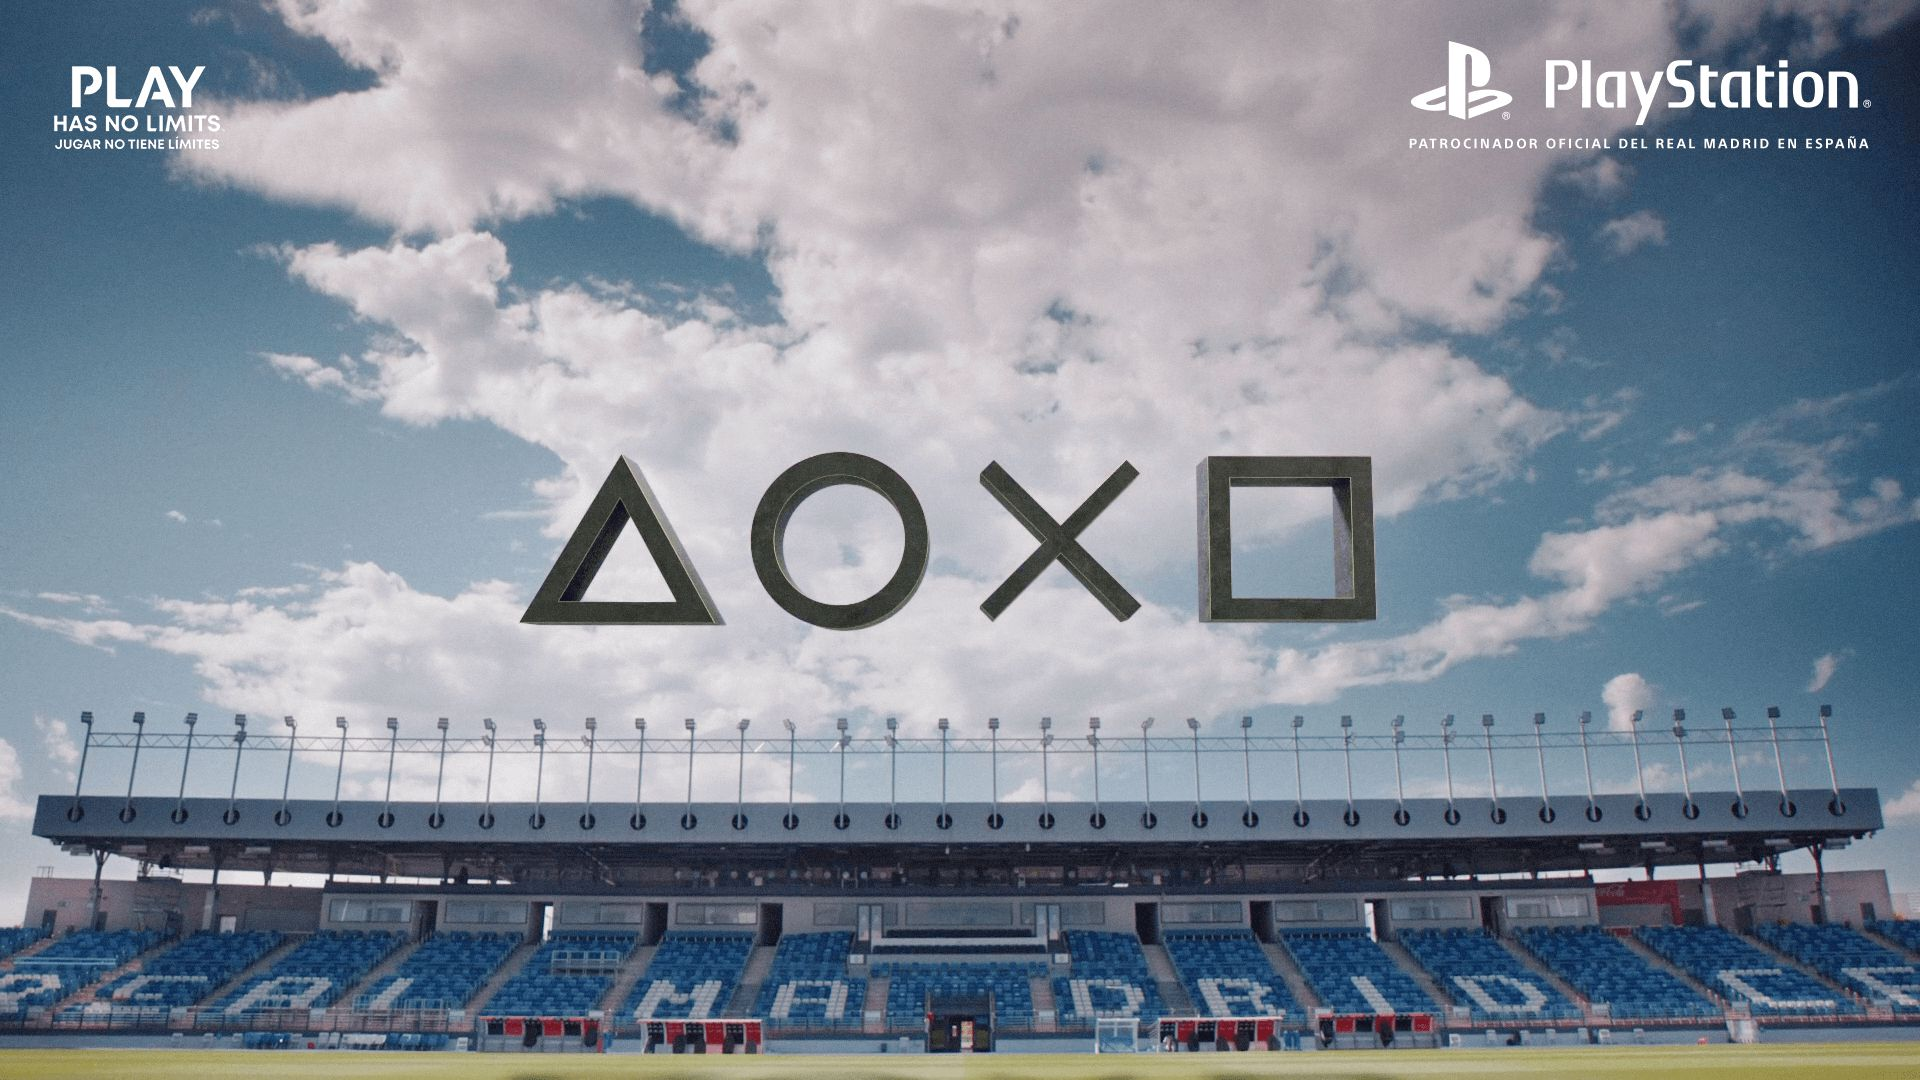 PlayStation Real Madrid